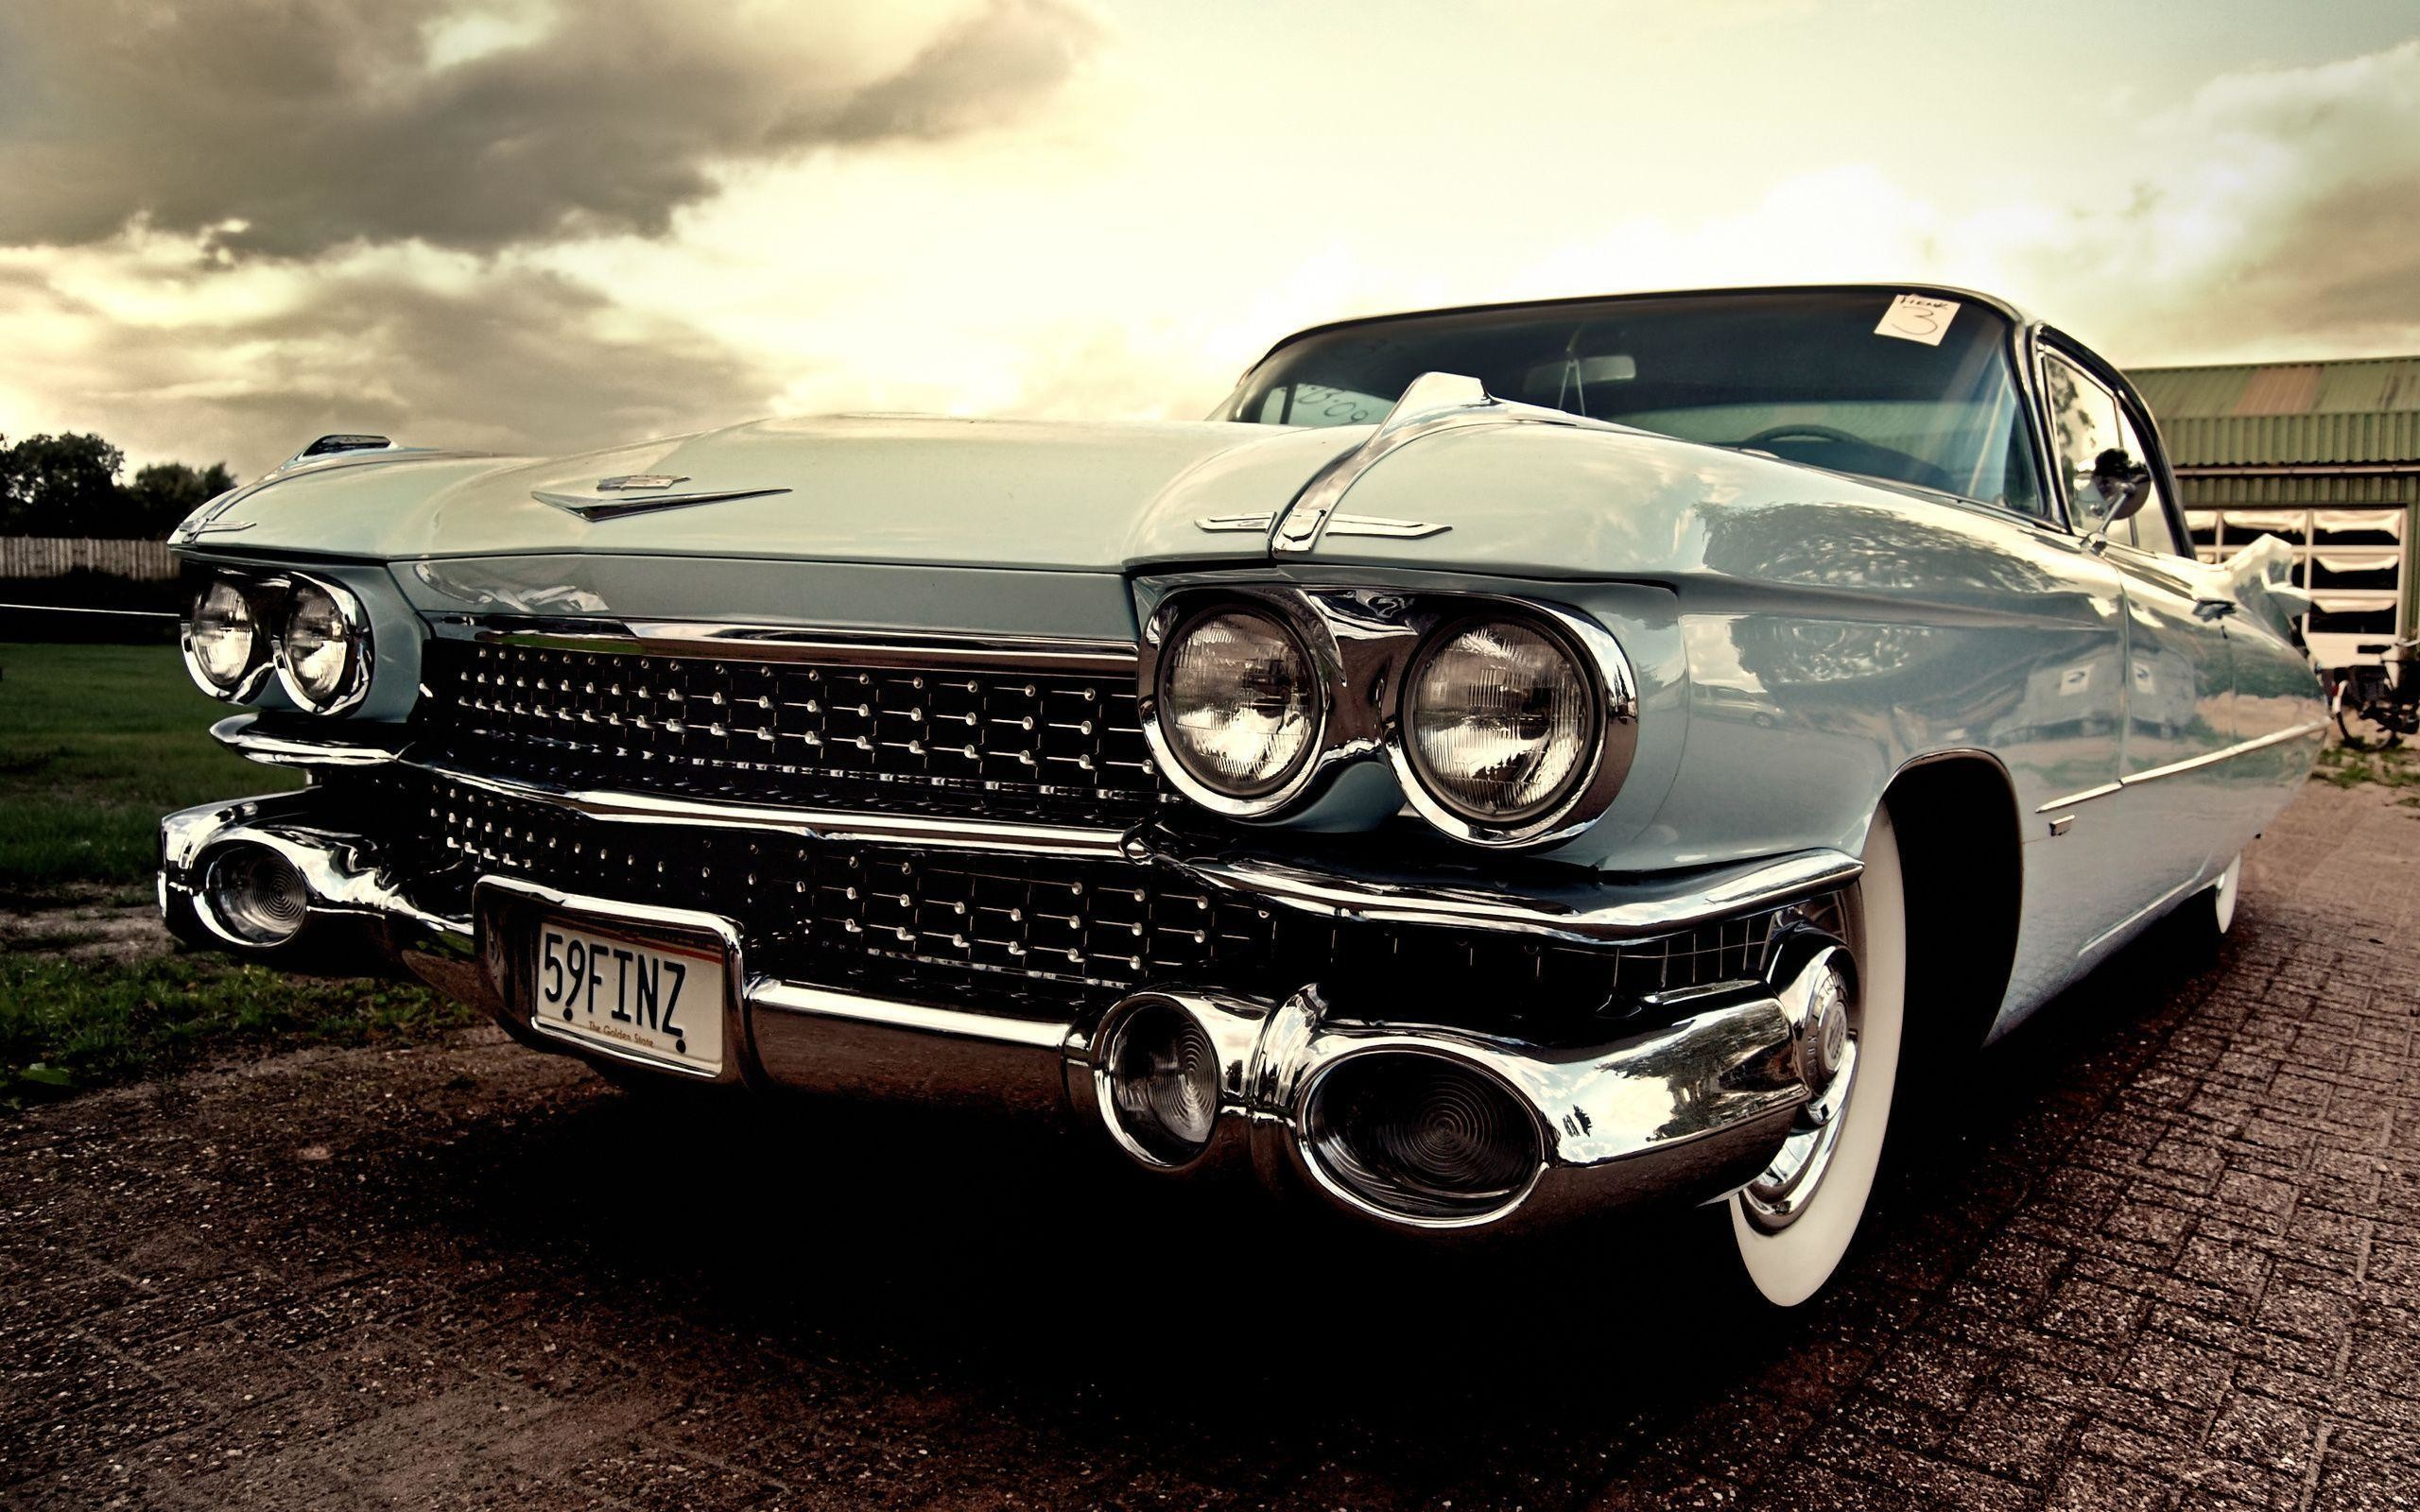 Res: 2560x1600, Classic Cars - Cars Wallpapers (7779) ilikewalls.